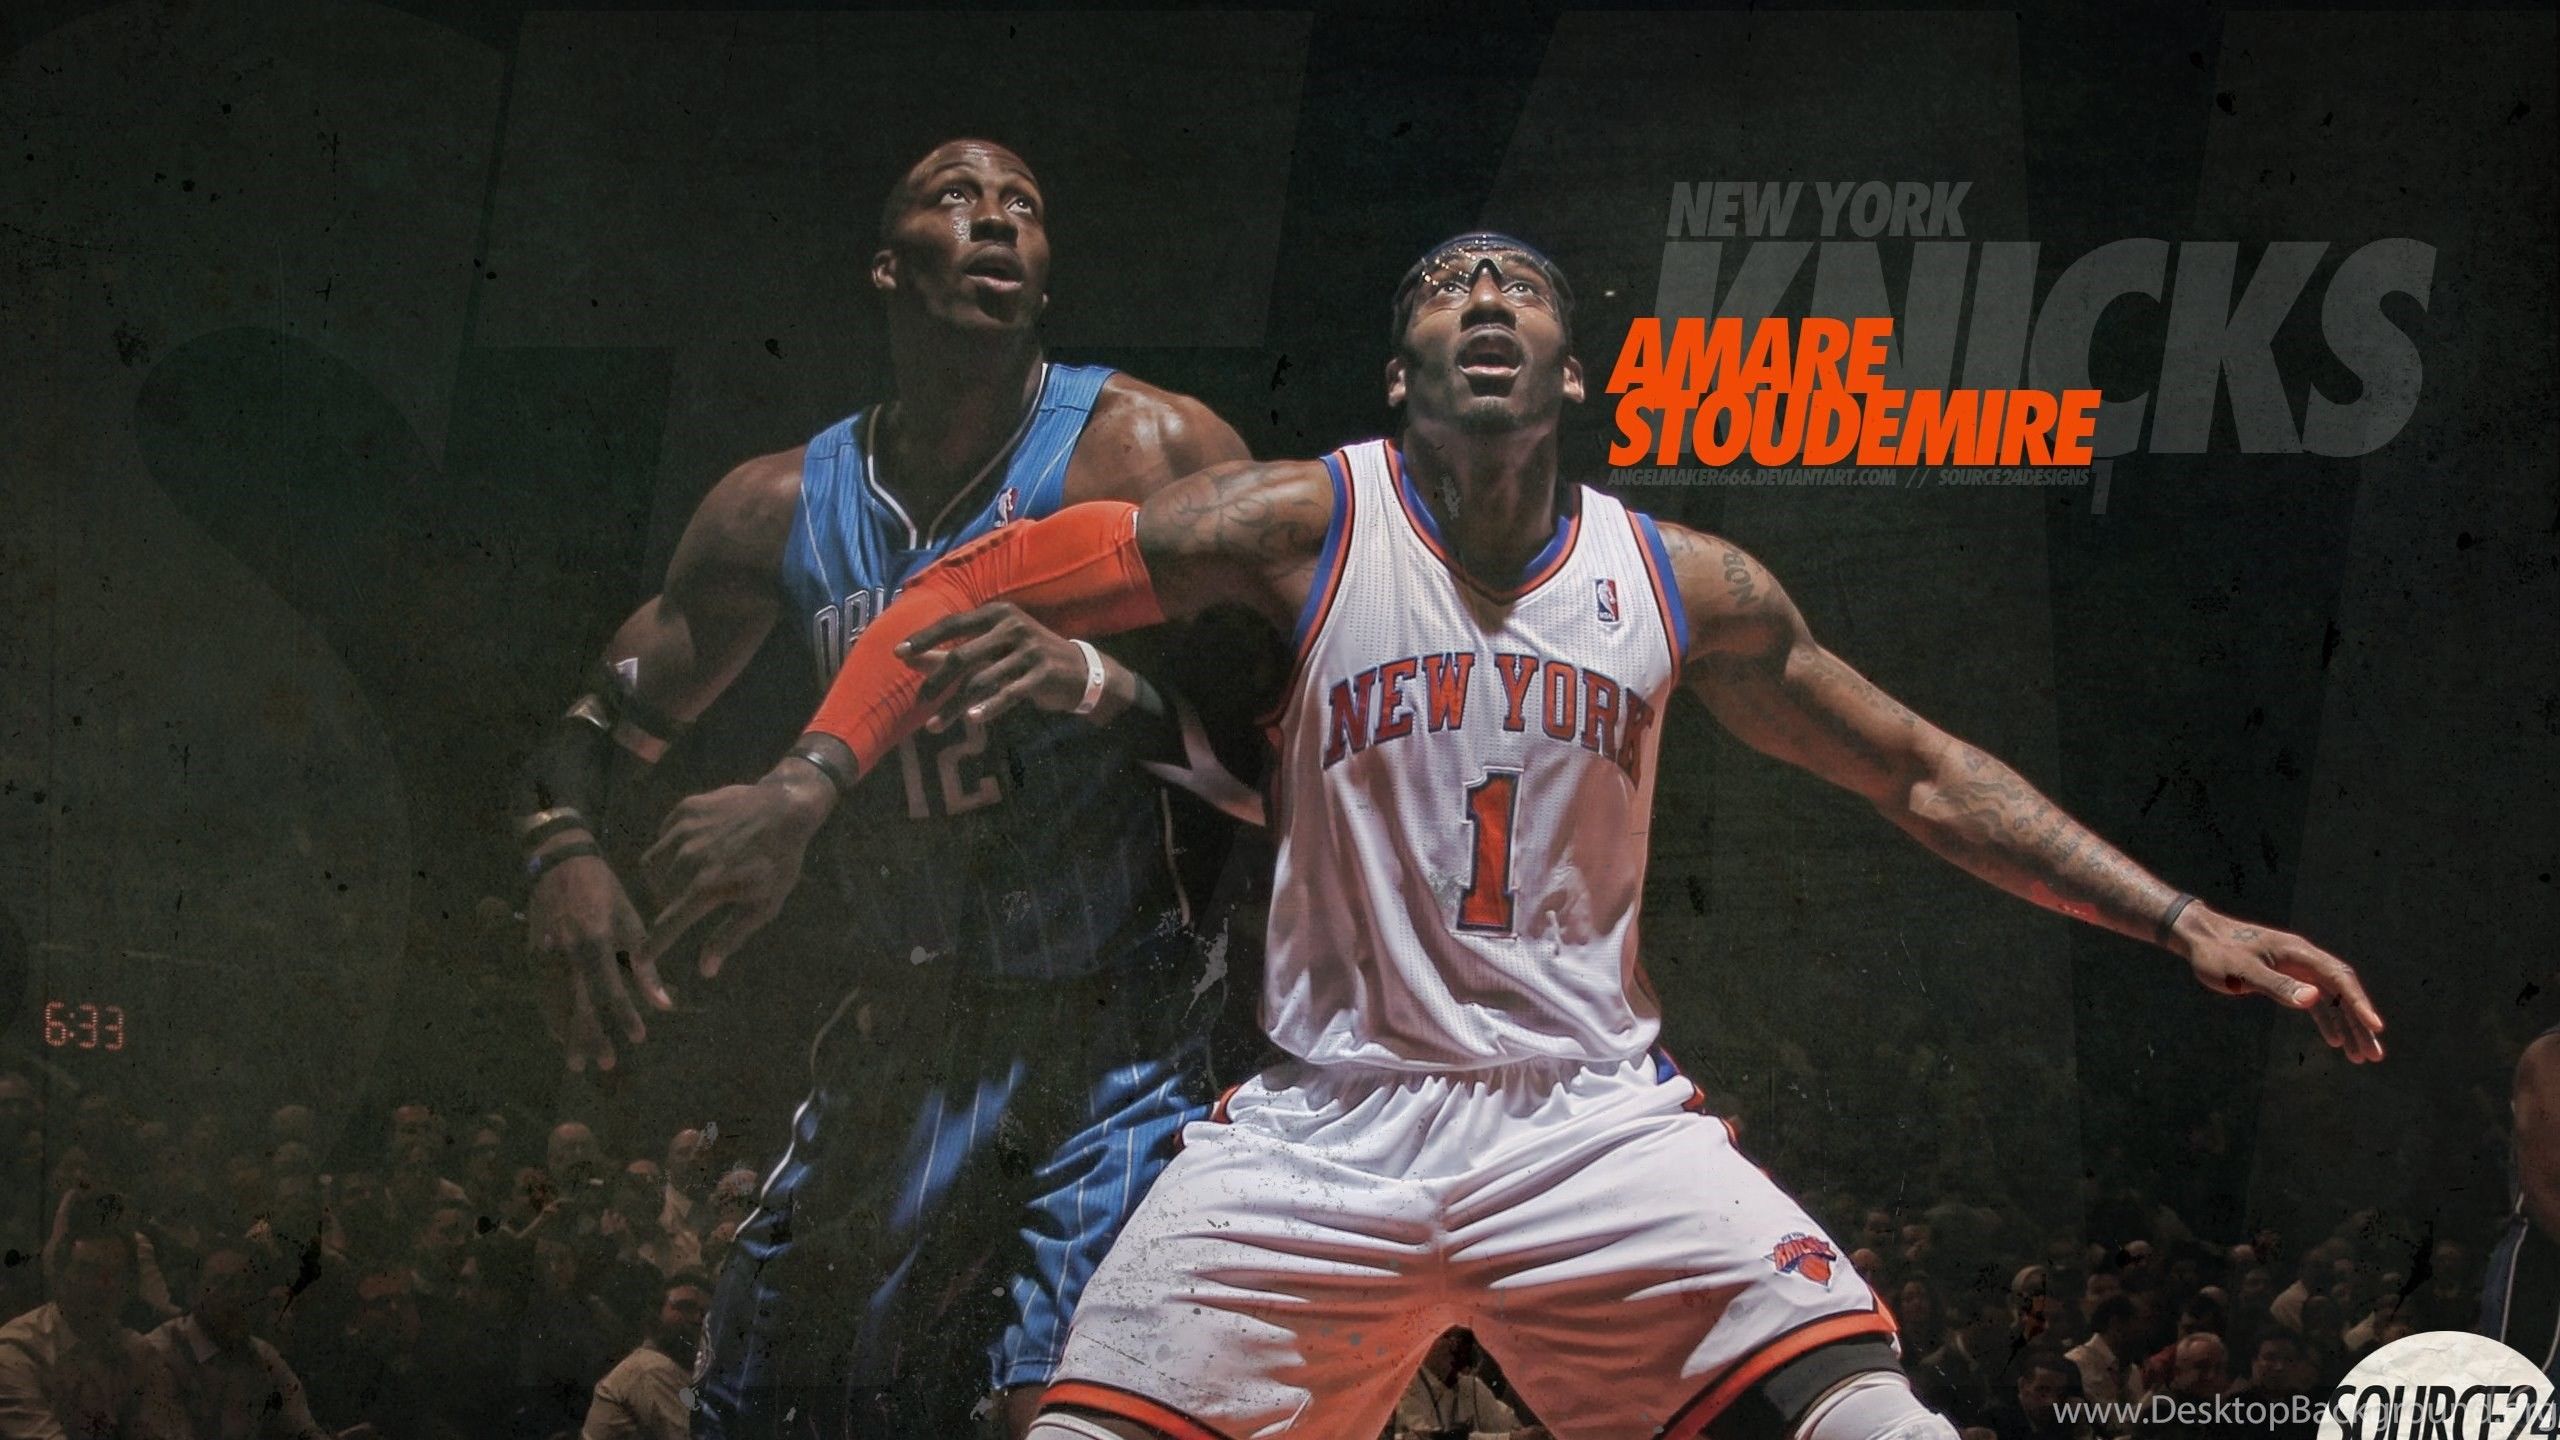 2560x1440 Melo New Knicks Wallpapers Streetball Source · Amare Stoudemire And Carmelo  Anthony Wallpapers Desktop Background